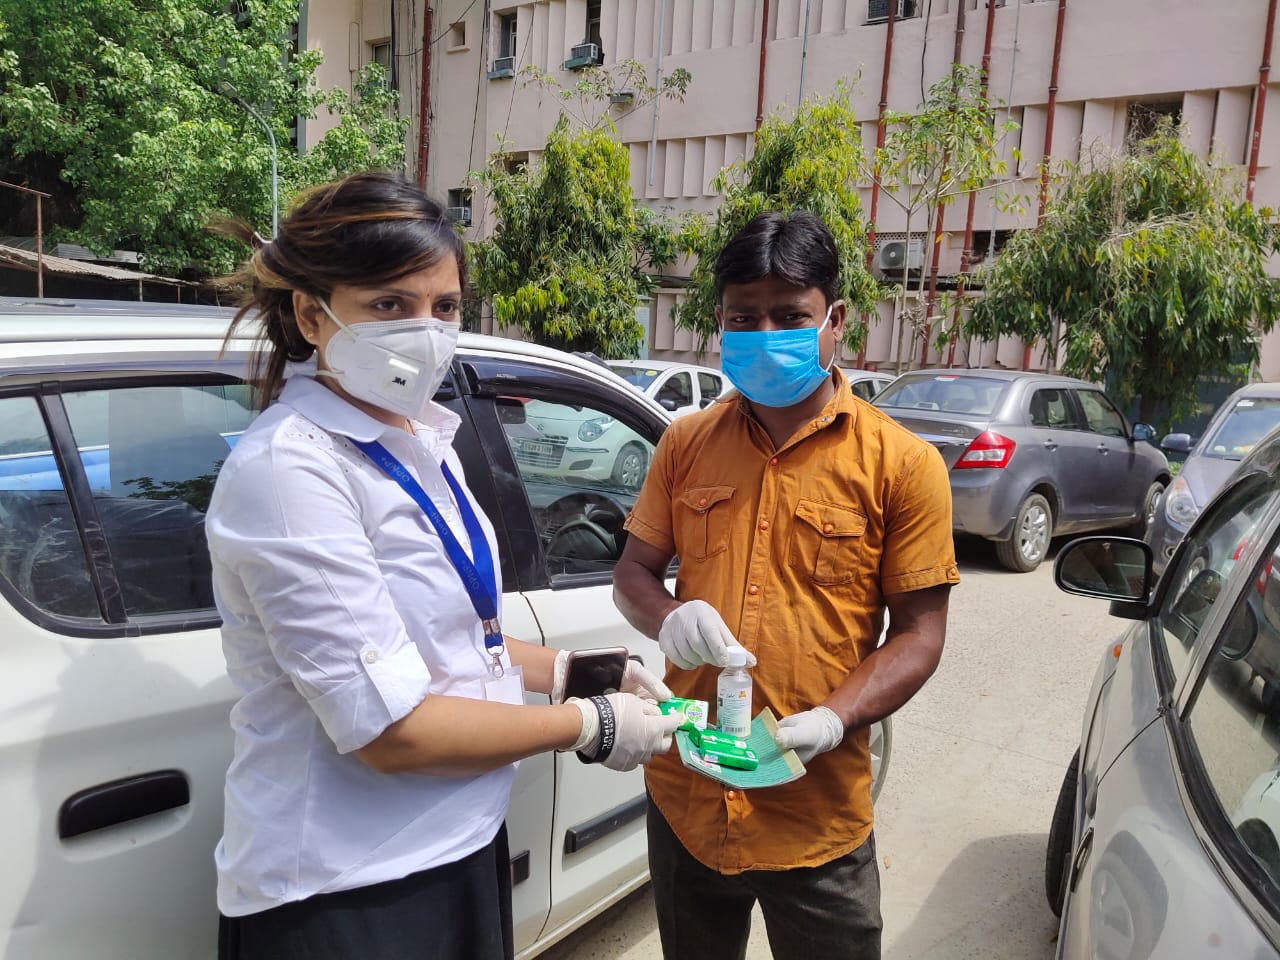 One of our outreach workers distributing hygiene product.